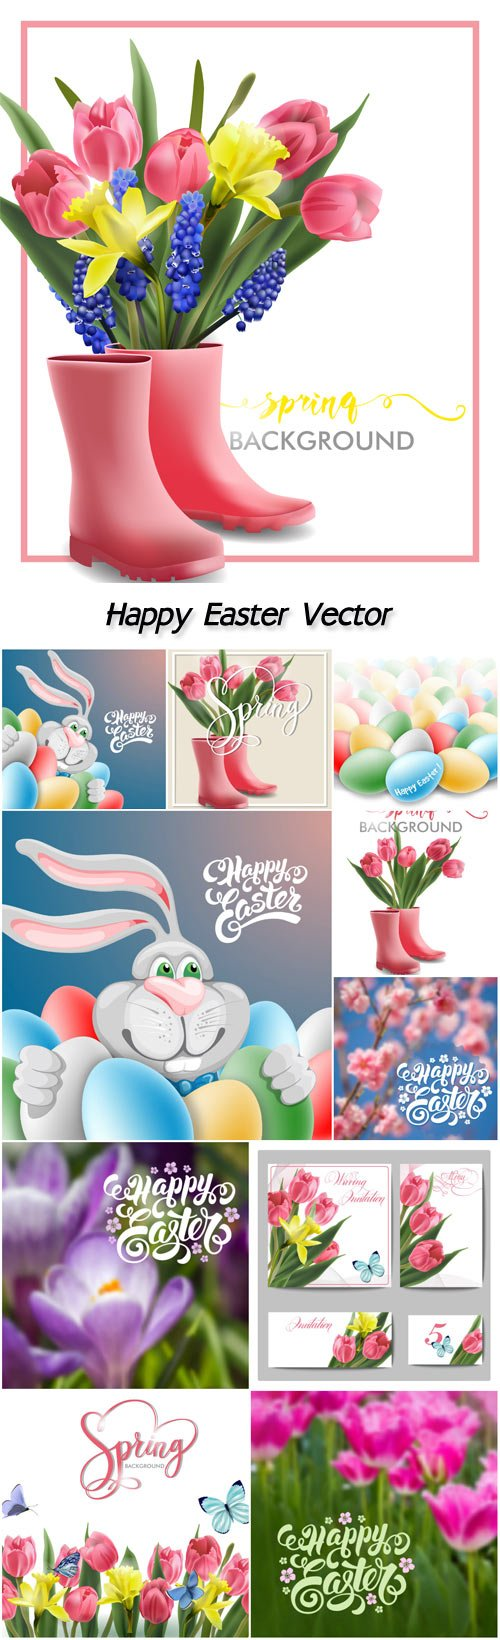 Happy Easter, spring background, flowers, pink tulips, butterflies